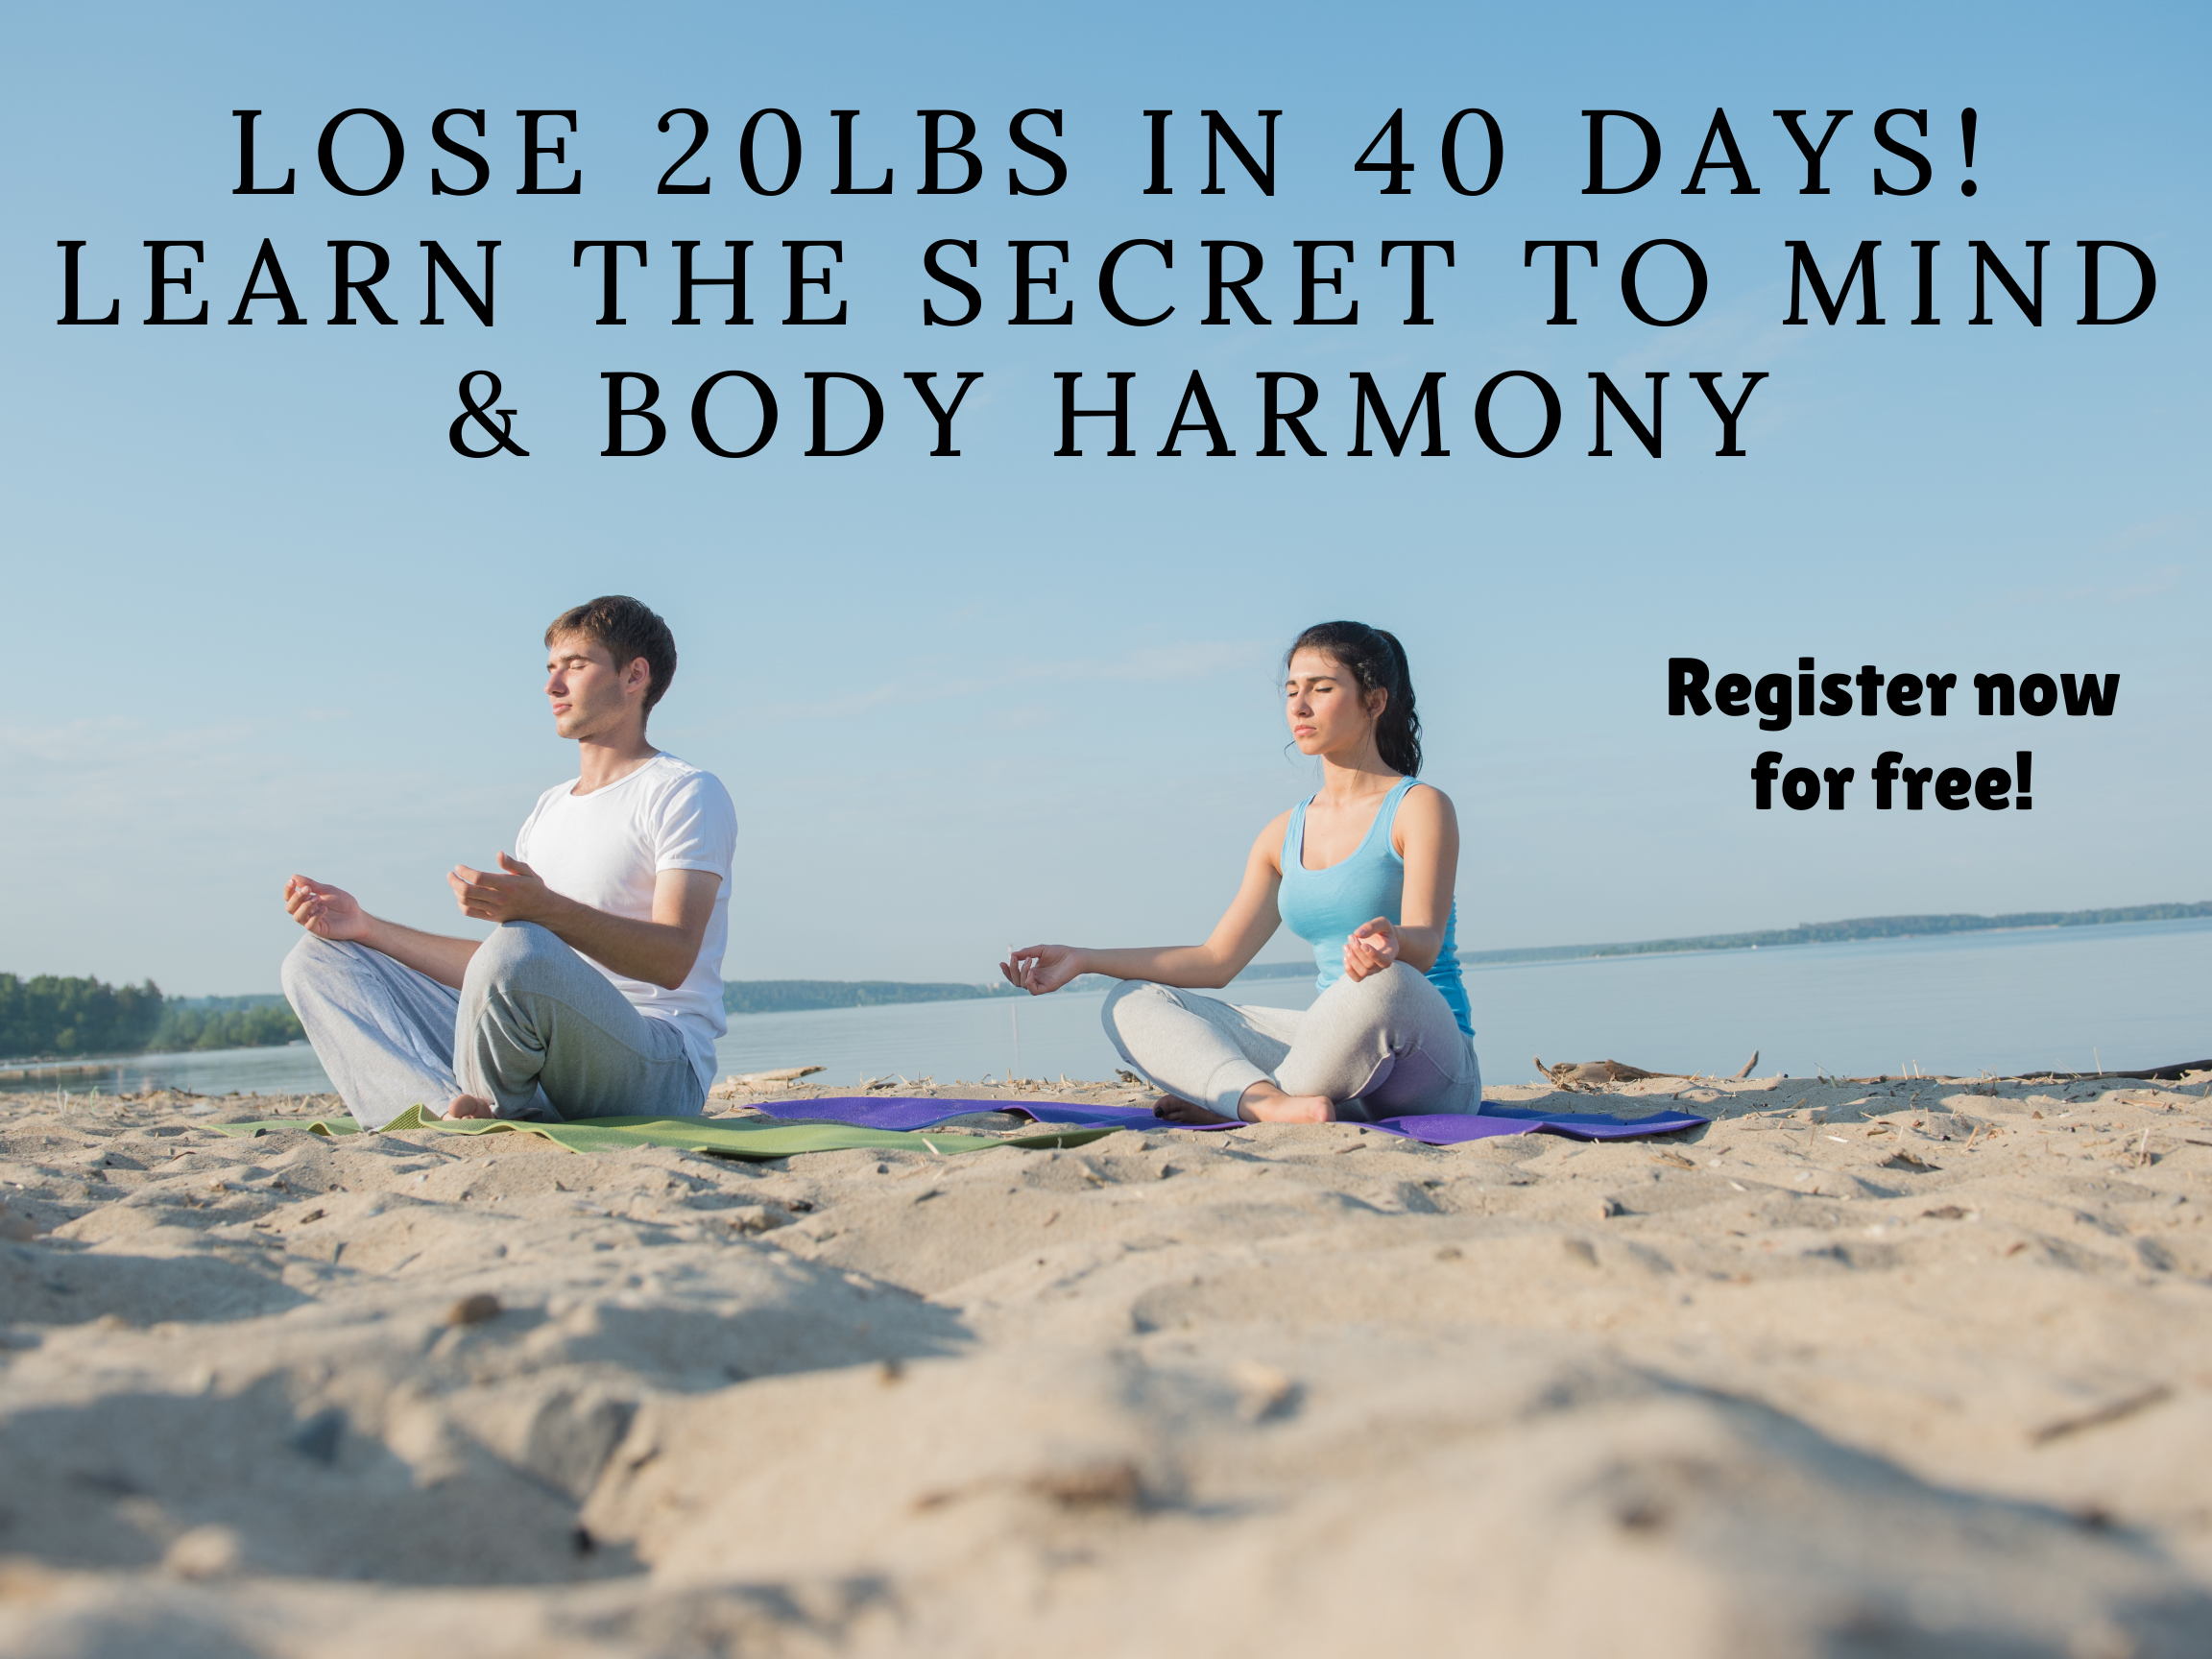 Lose 20 lbs in 40 days. The Secret to Mind & Body Harmony!